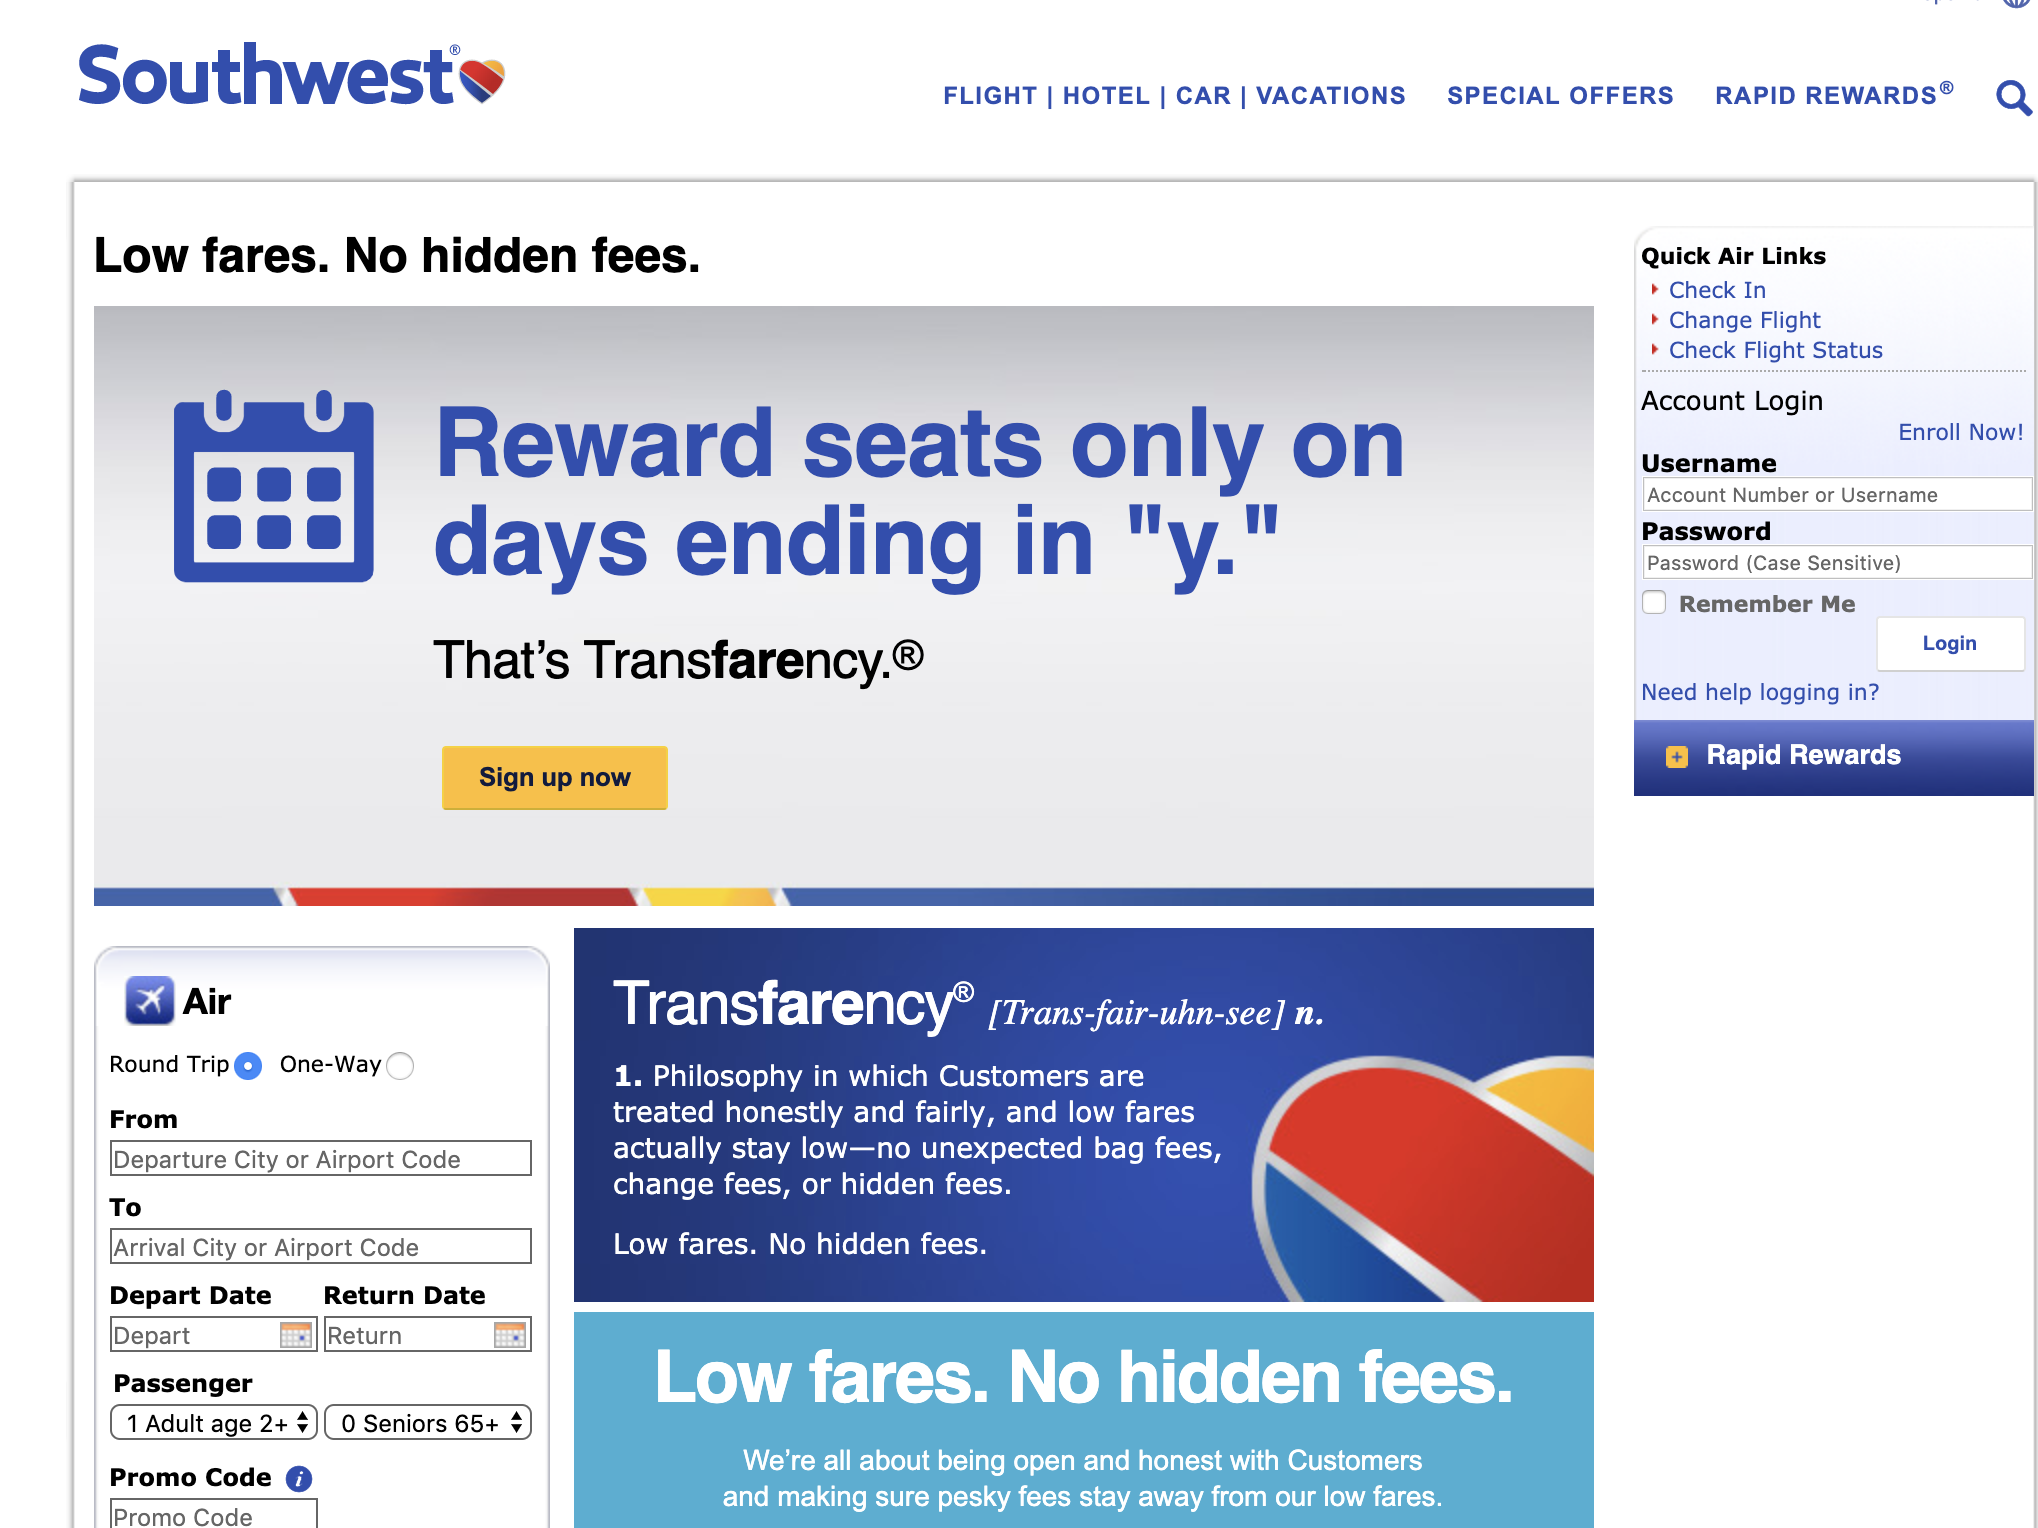 Southwest Airlines Brand Messaging